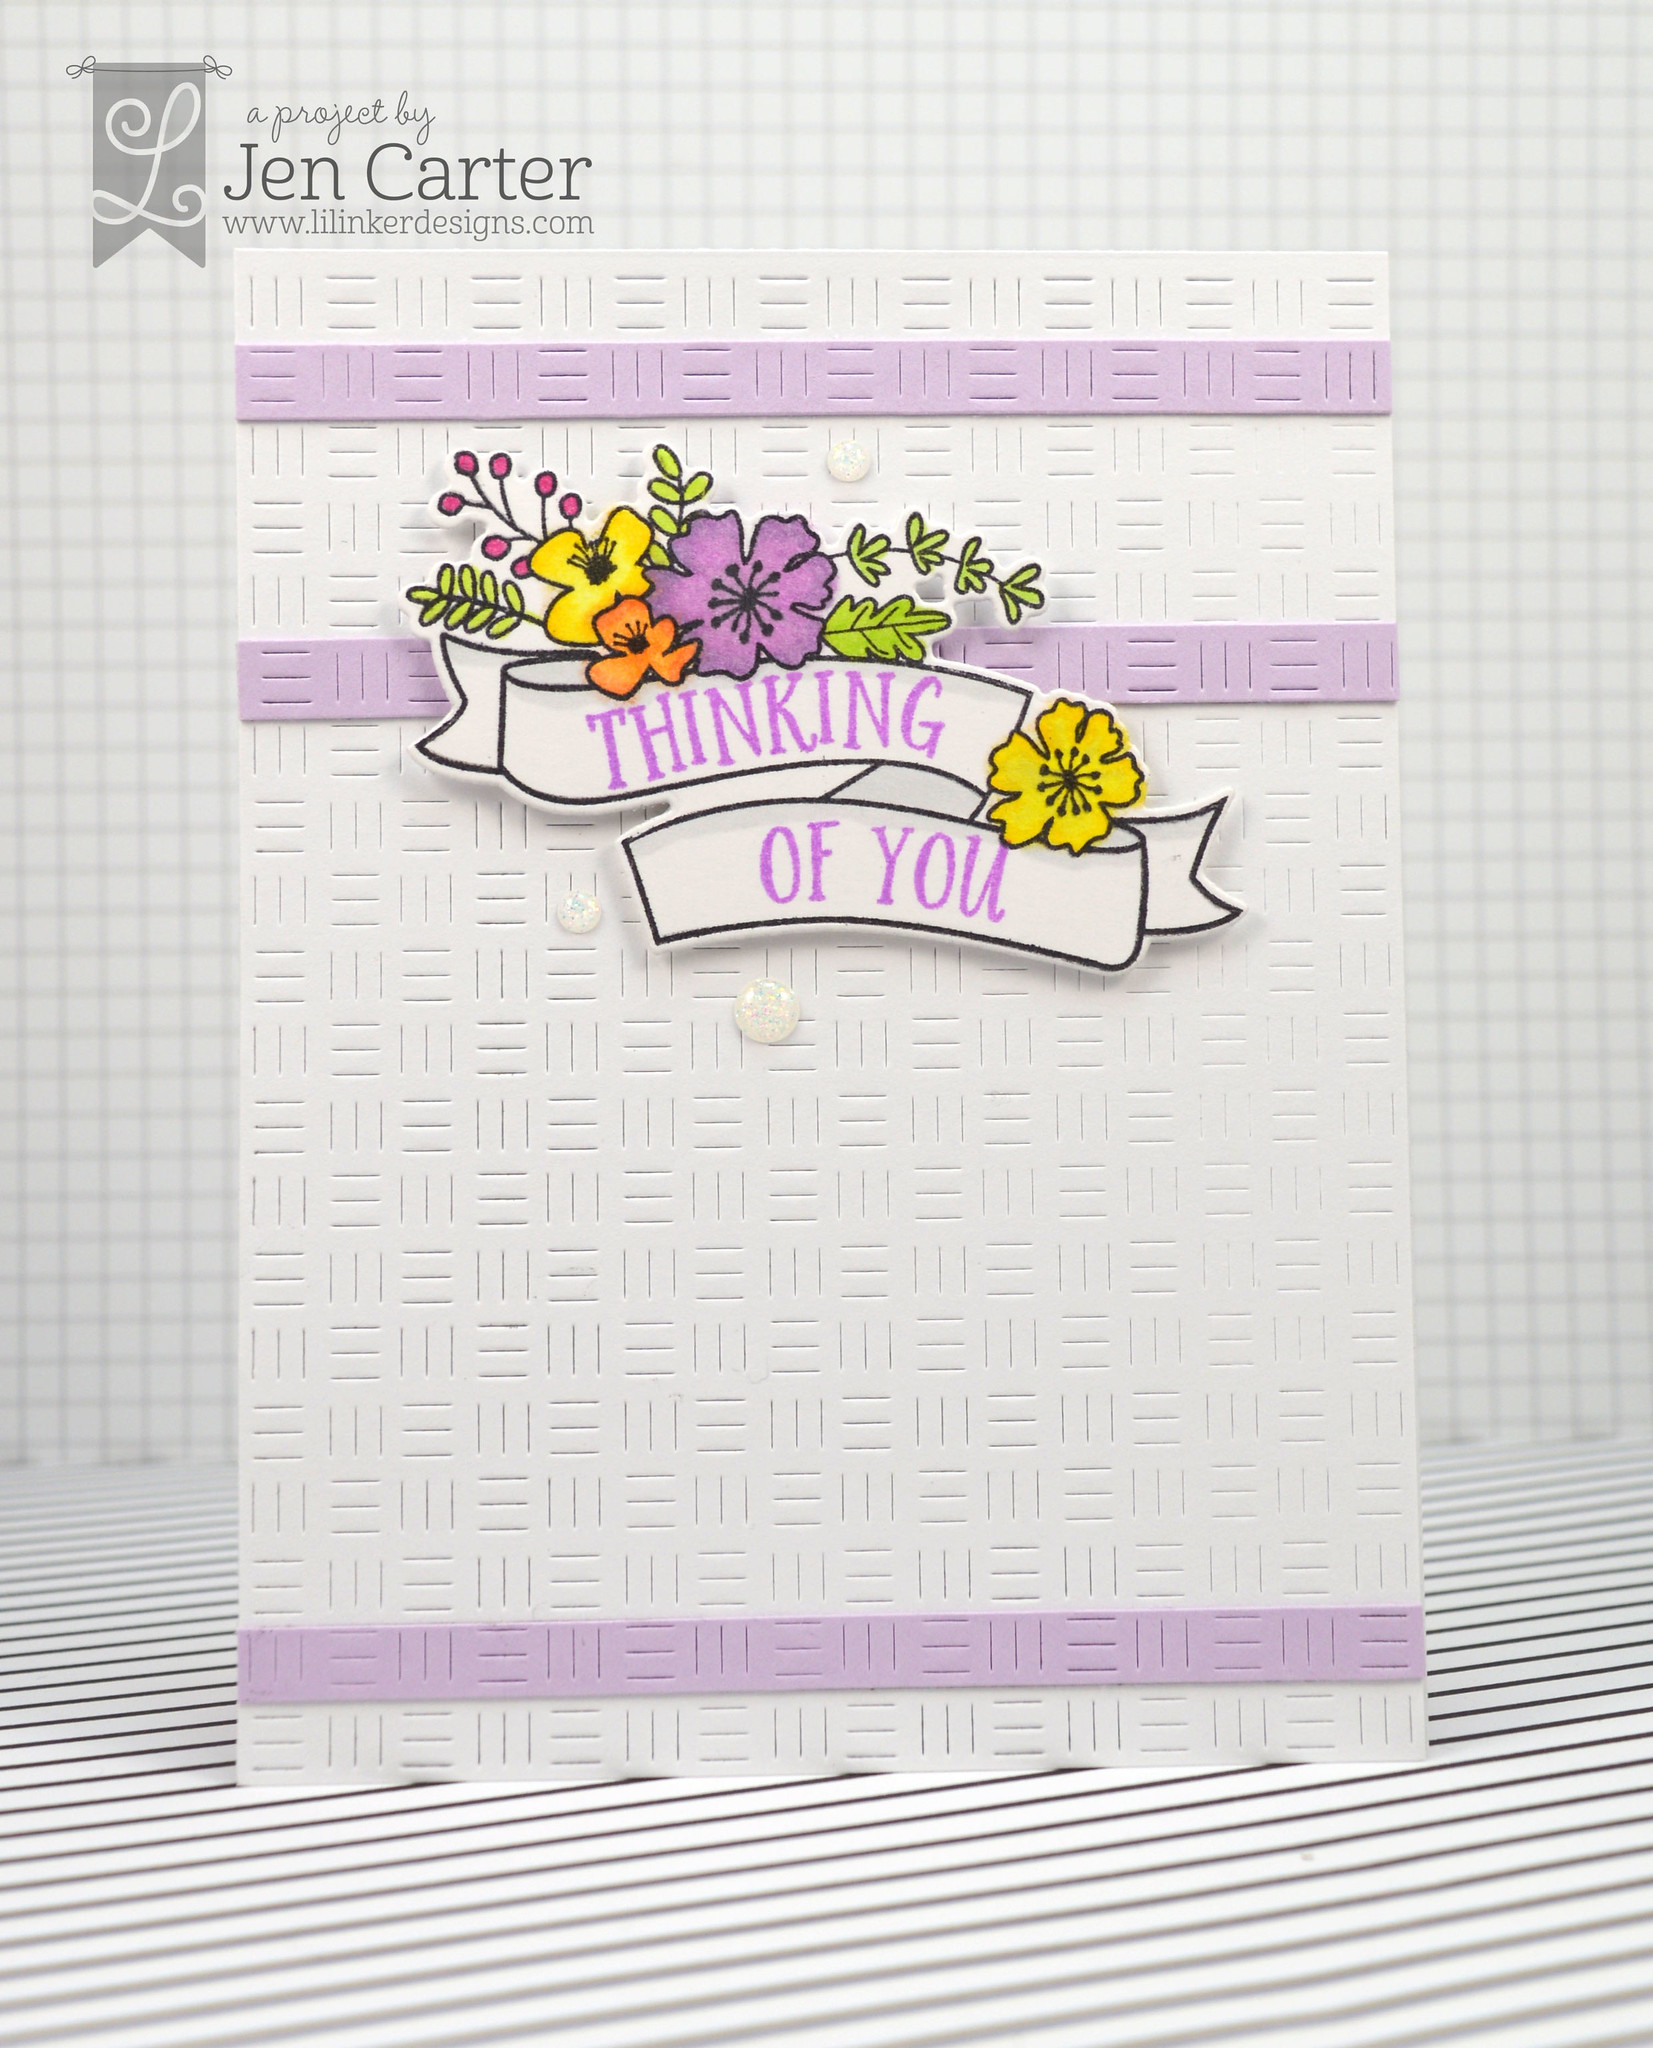 Jen Carter Blossoms Banners Thinking You 1 wm